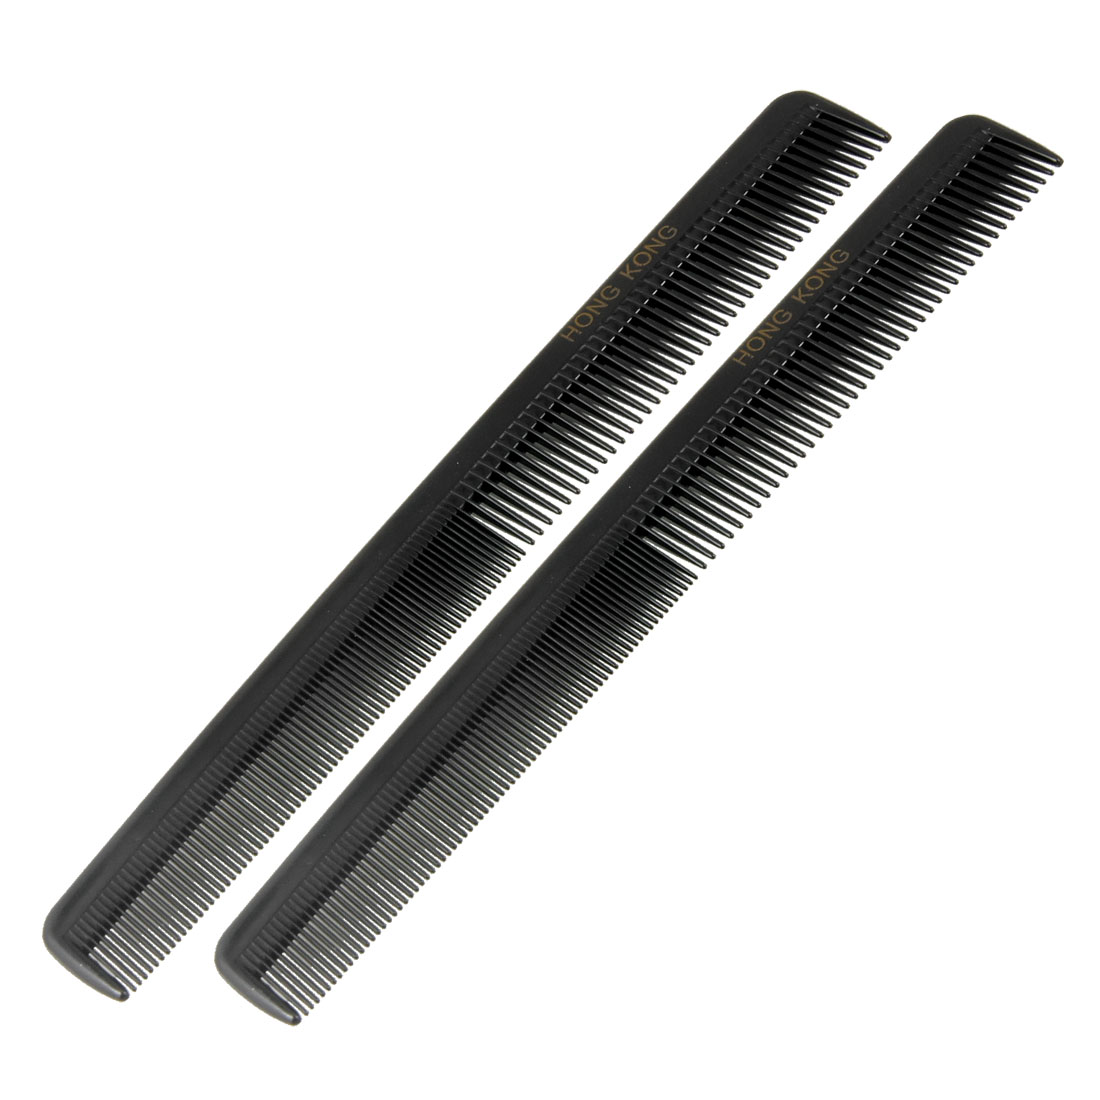 Black Plastic Double Head Narrow Fine Teeth Hair Comb Beauty Tool 2 Pcs